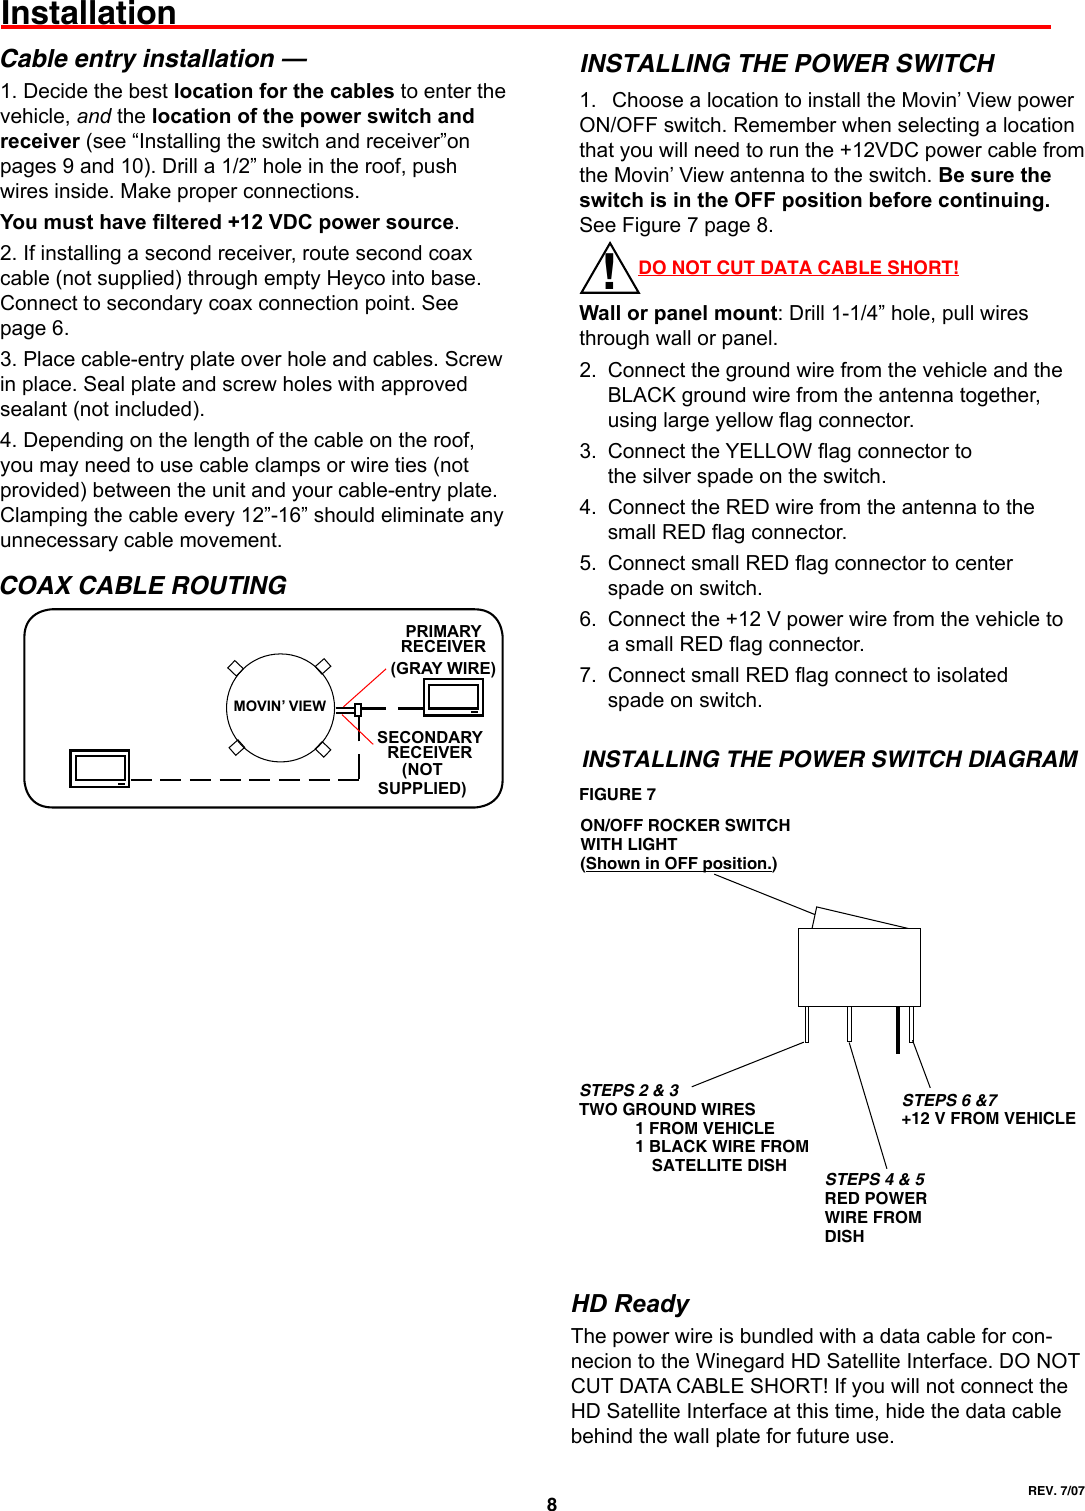 Winegard Satellite Tv System Mv3500a Users Manual Wiring Diagram Page 8 Of 12